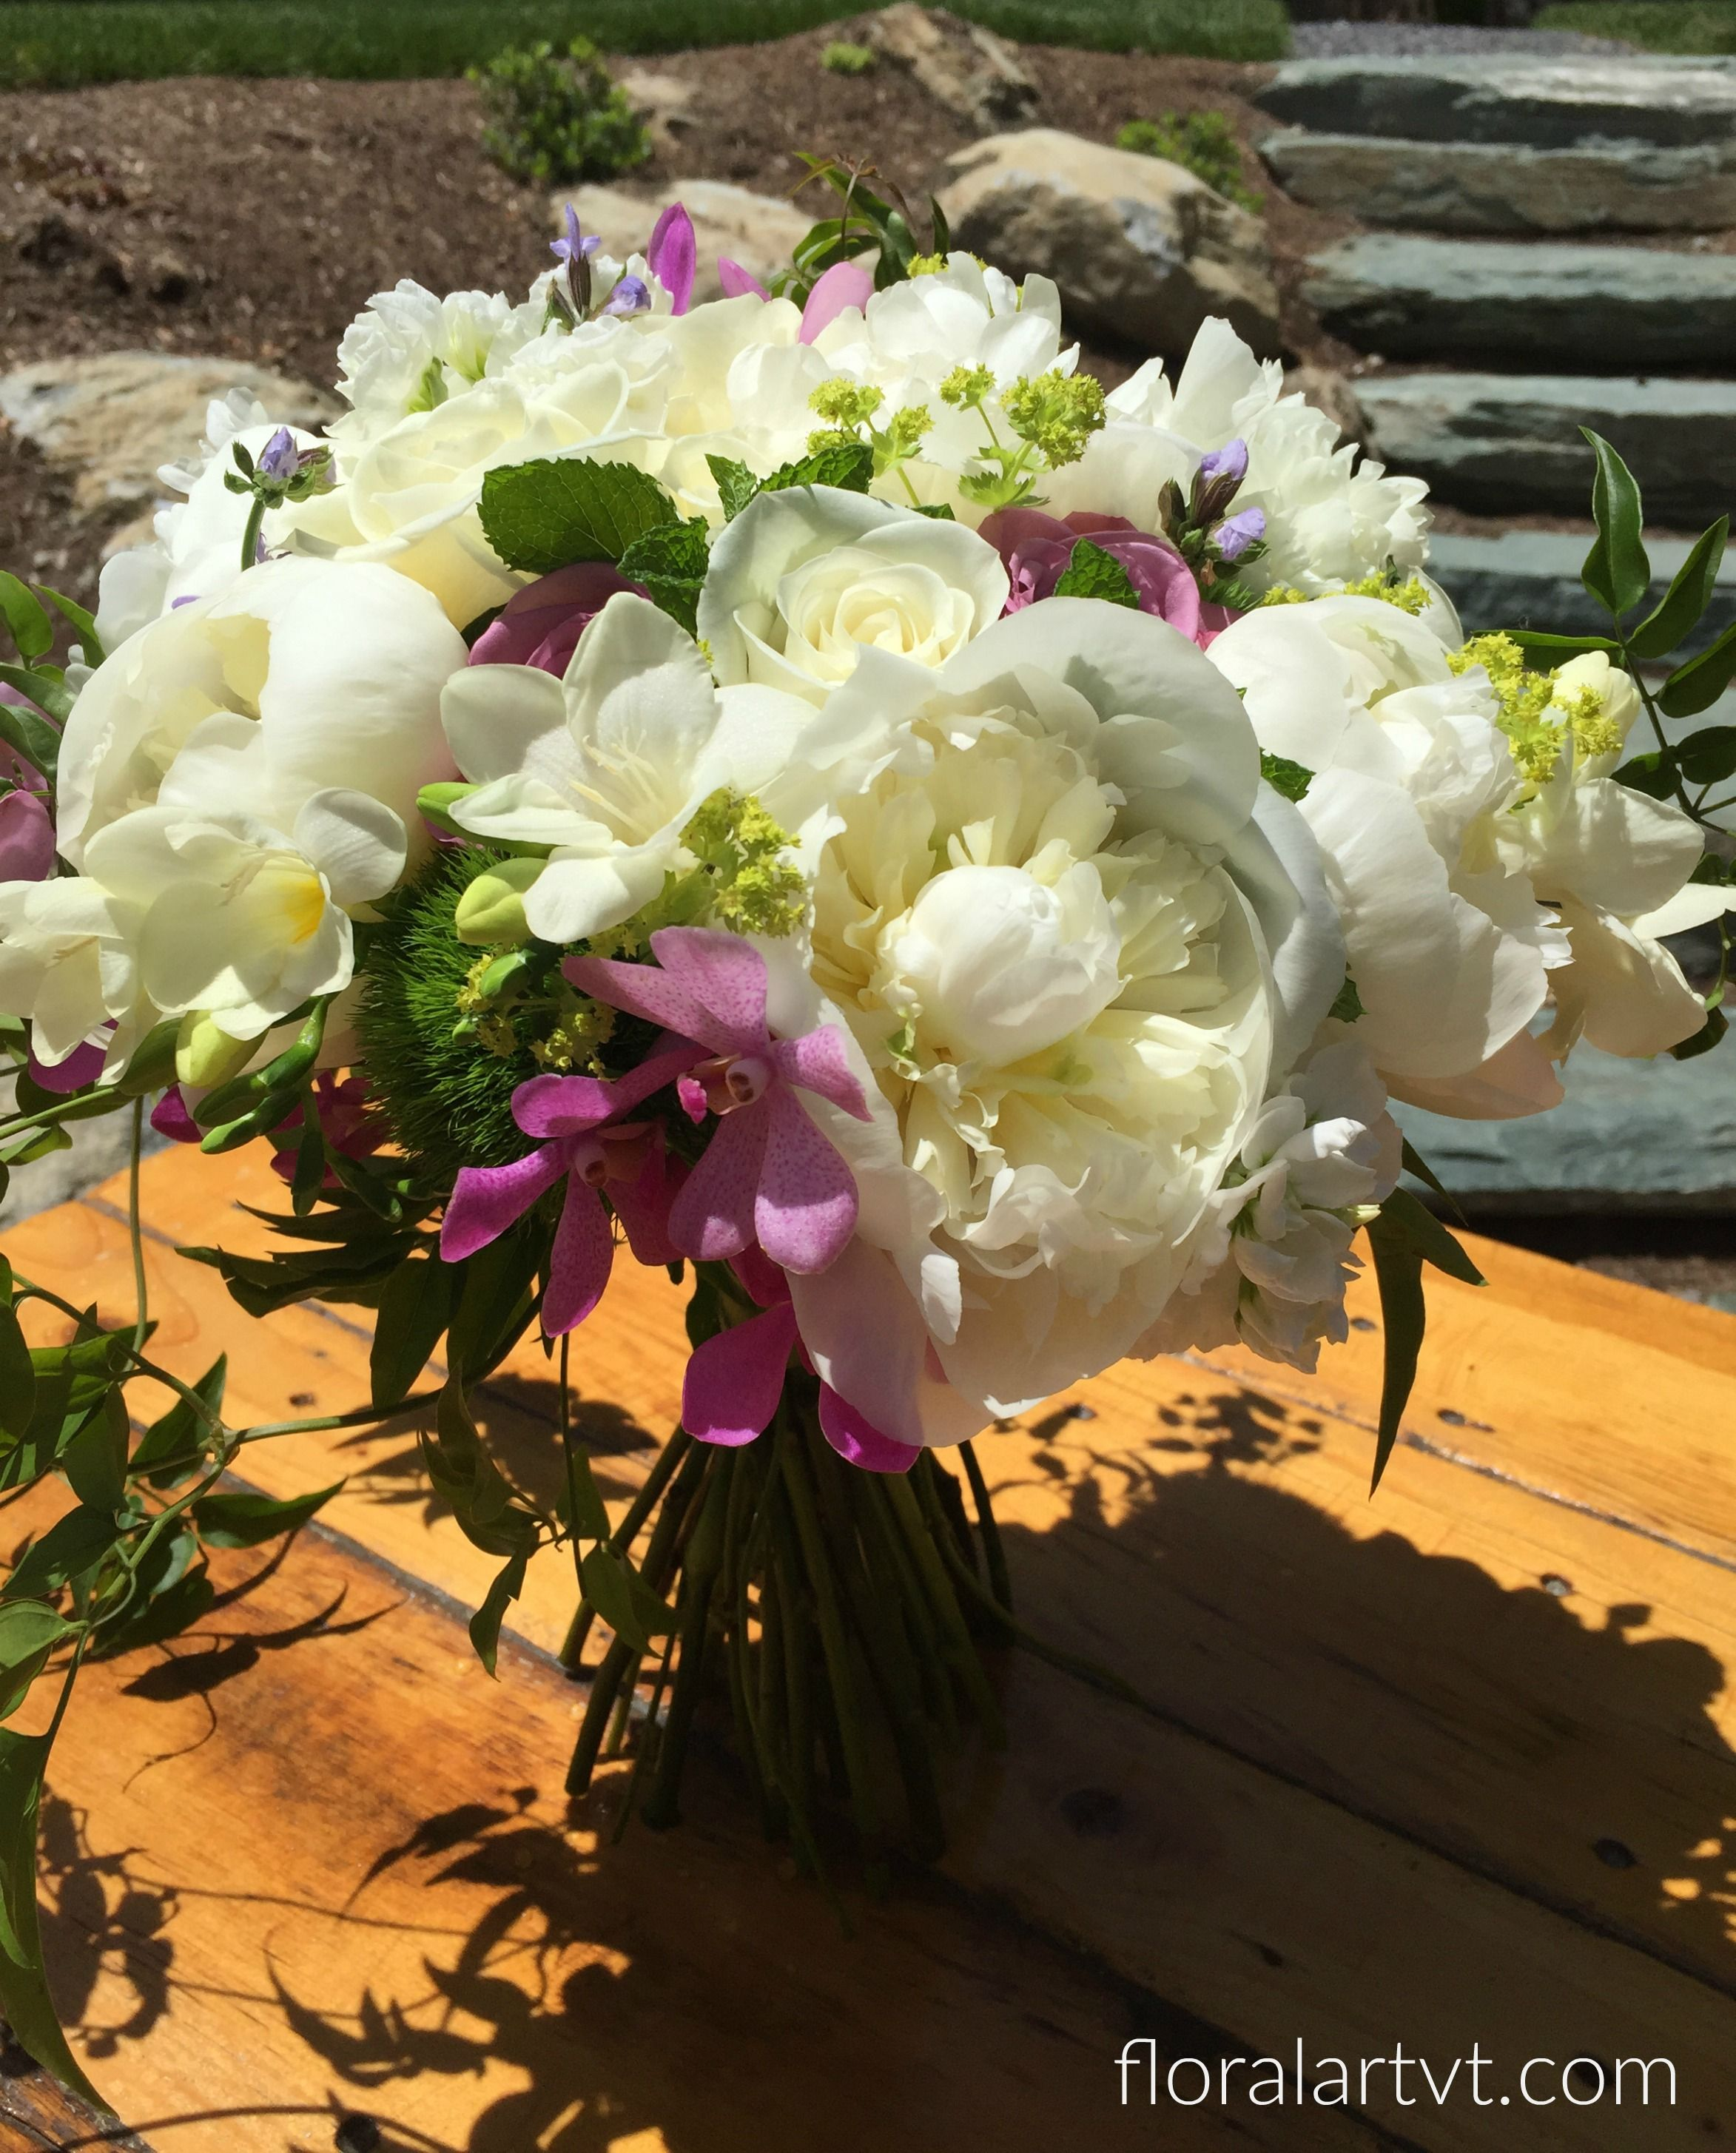 Bouquet Of White Peonies Freesia Roses And Orchids With Jasmine